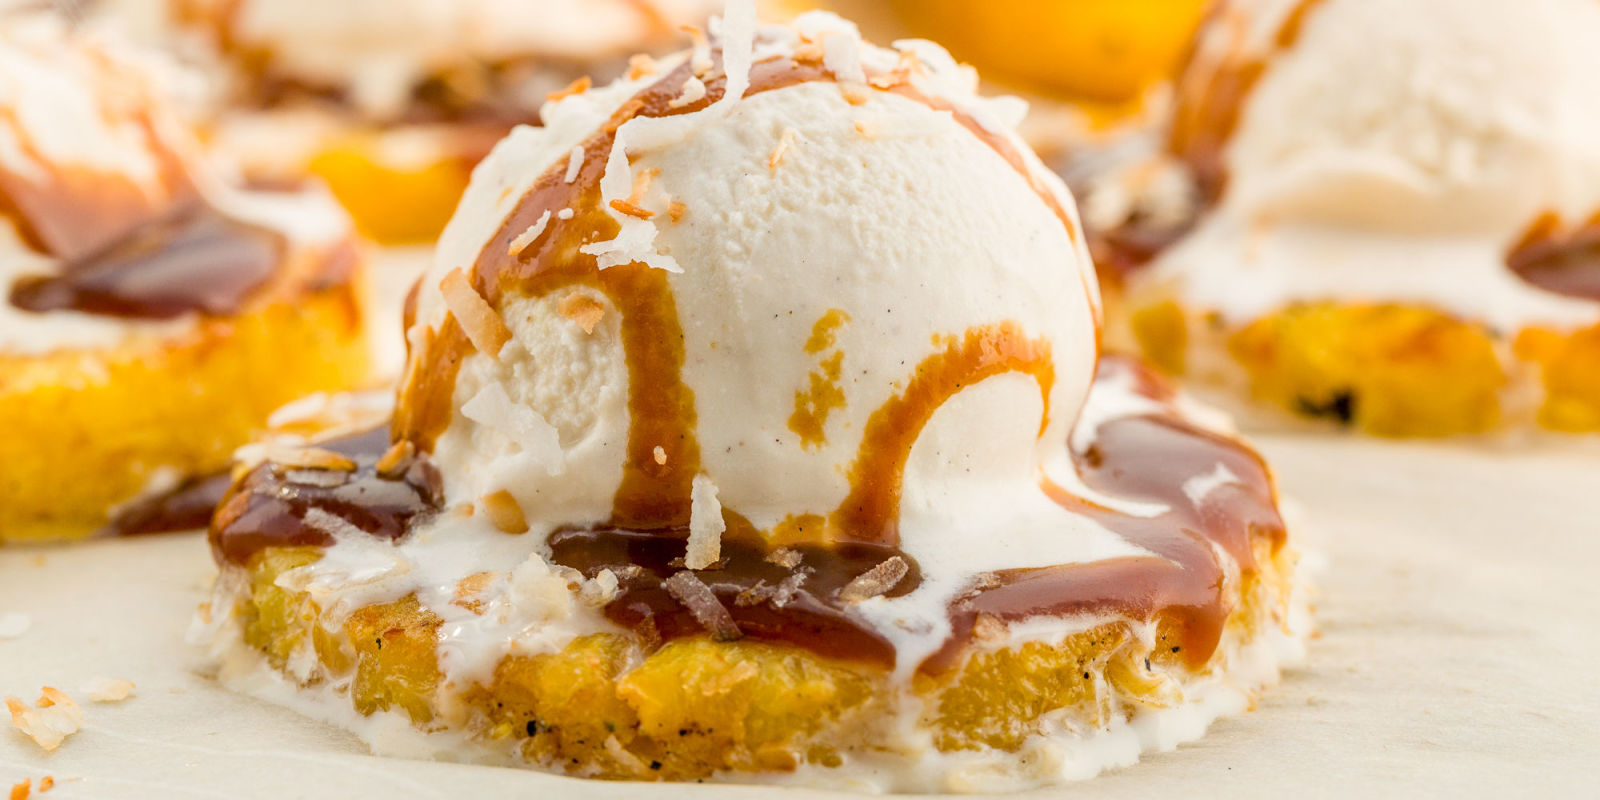 Pineapple Upside Down Cake Sundaes Recipe